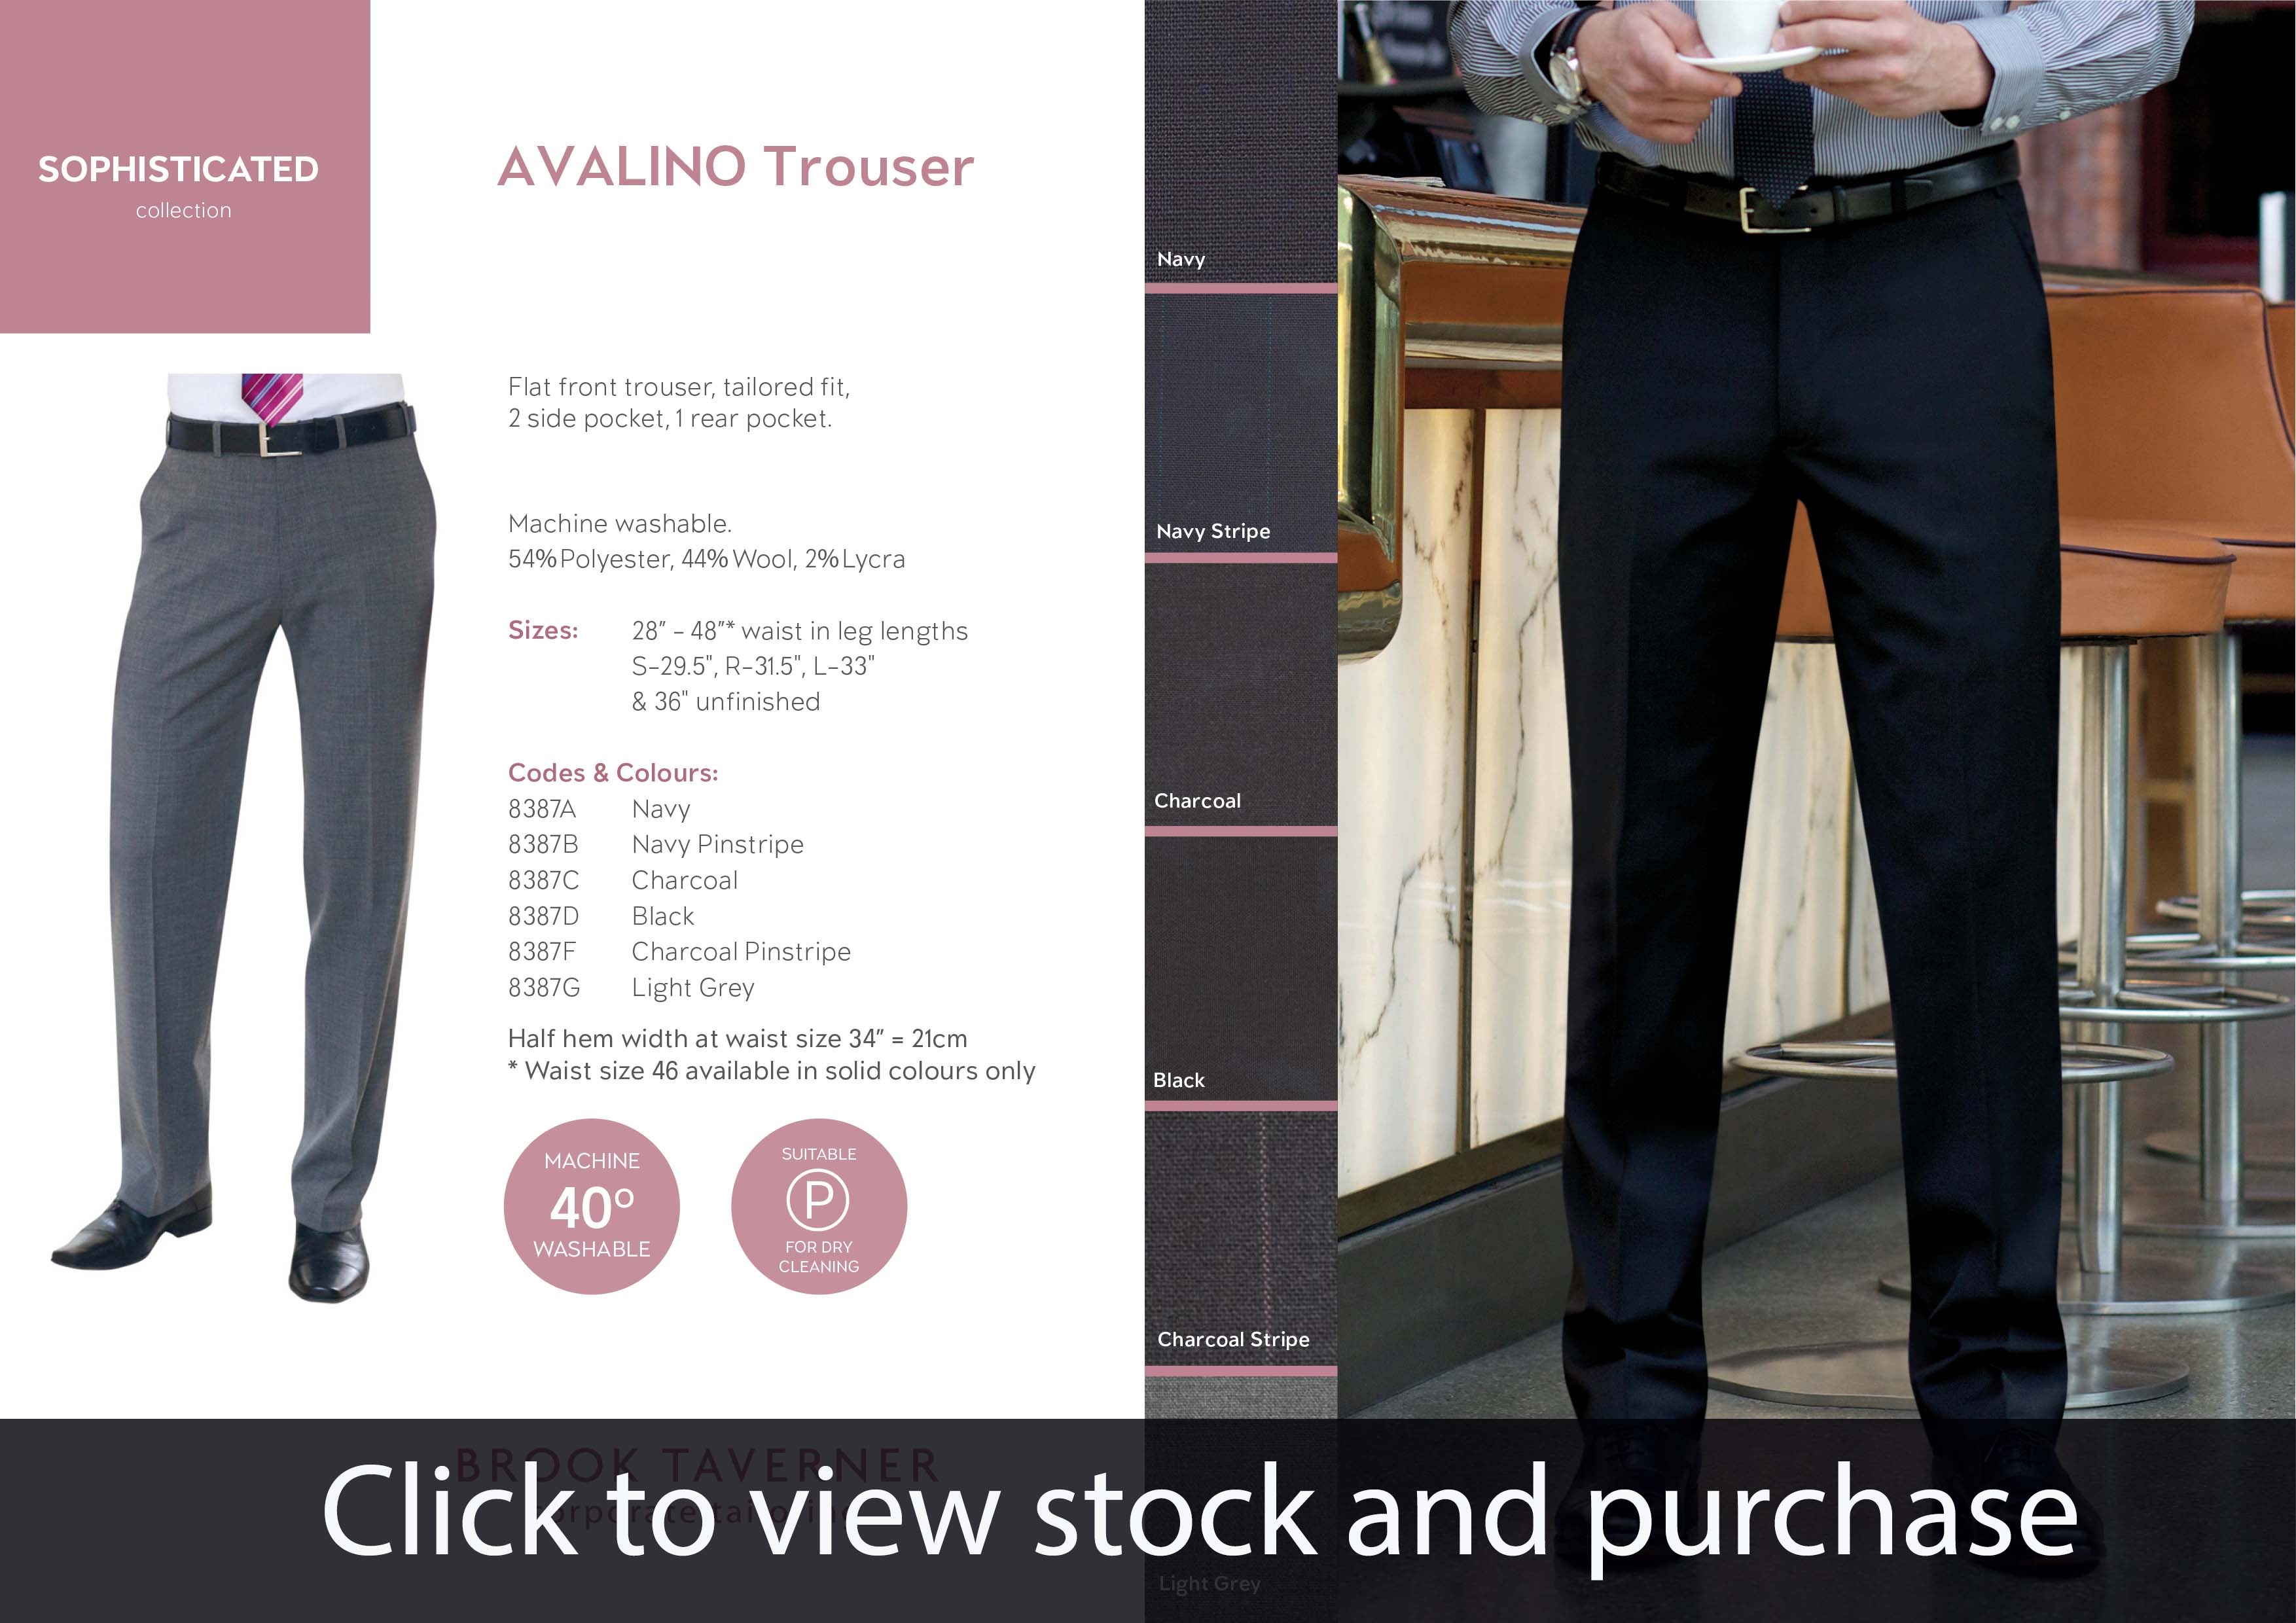 Brook Taverner Avalino Trousers